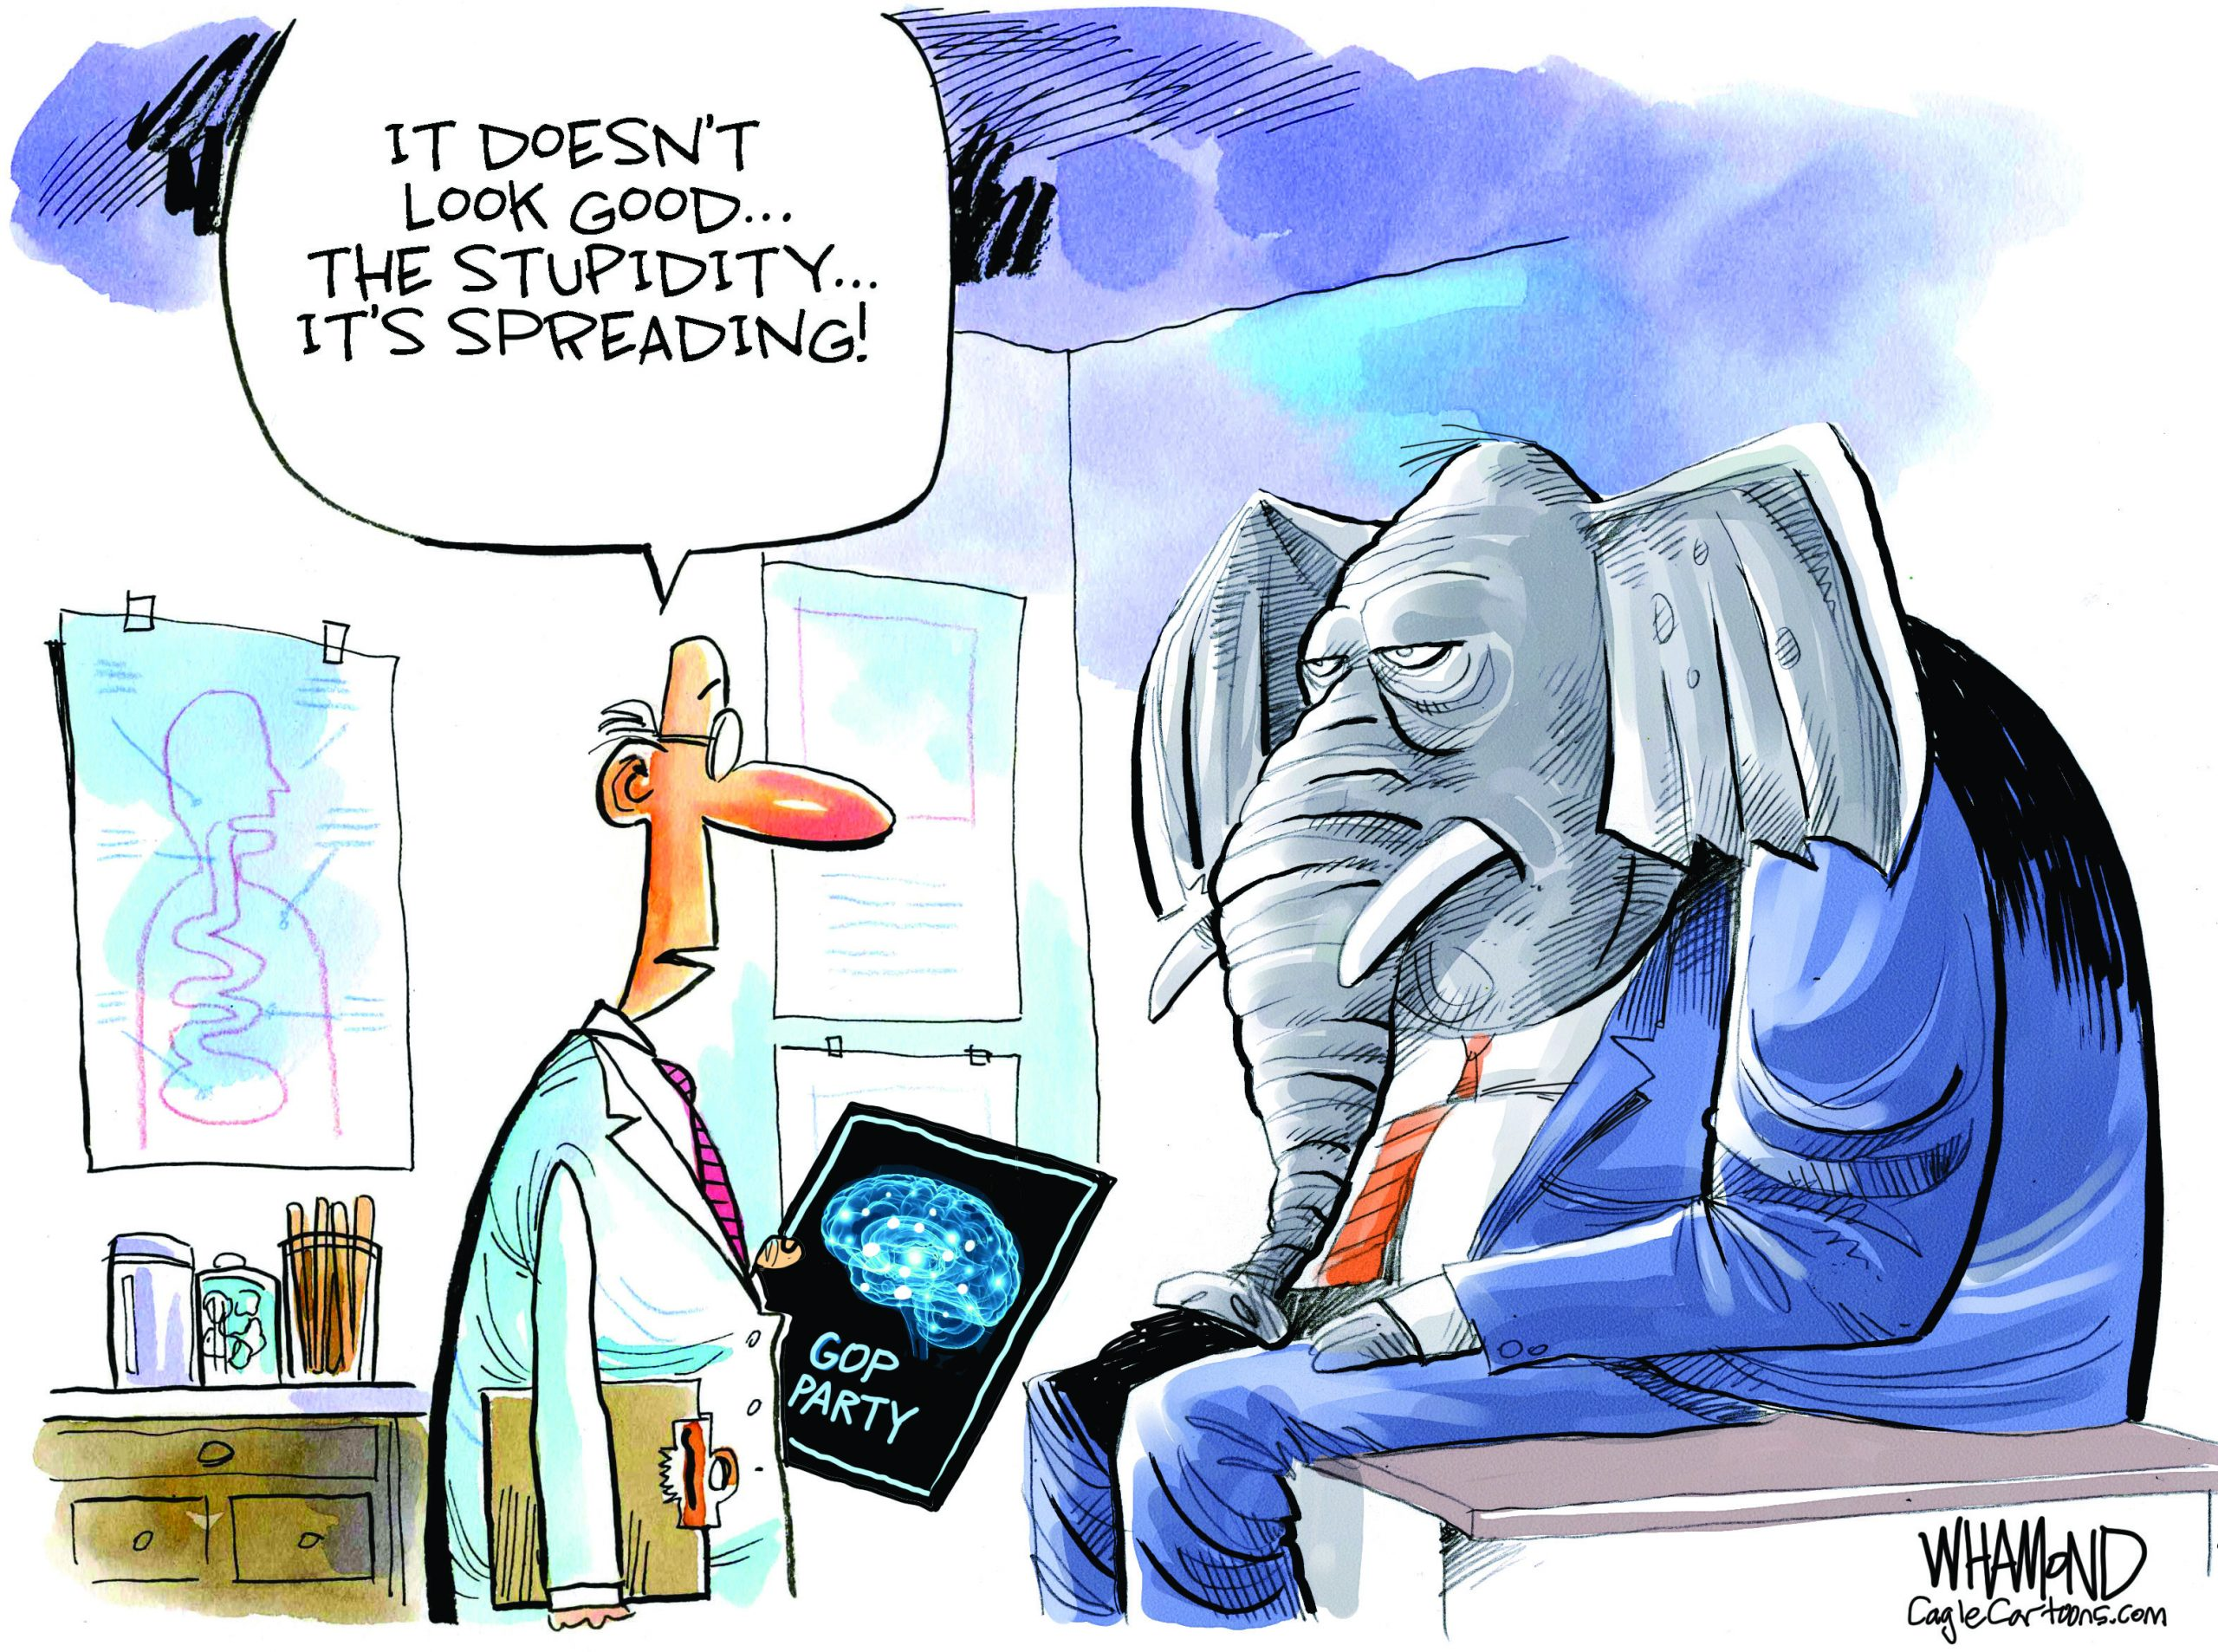 GOP Stupidity. Dave Whamond.